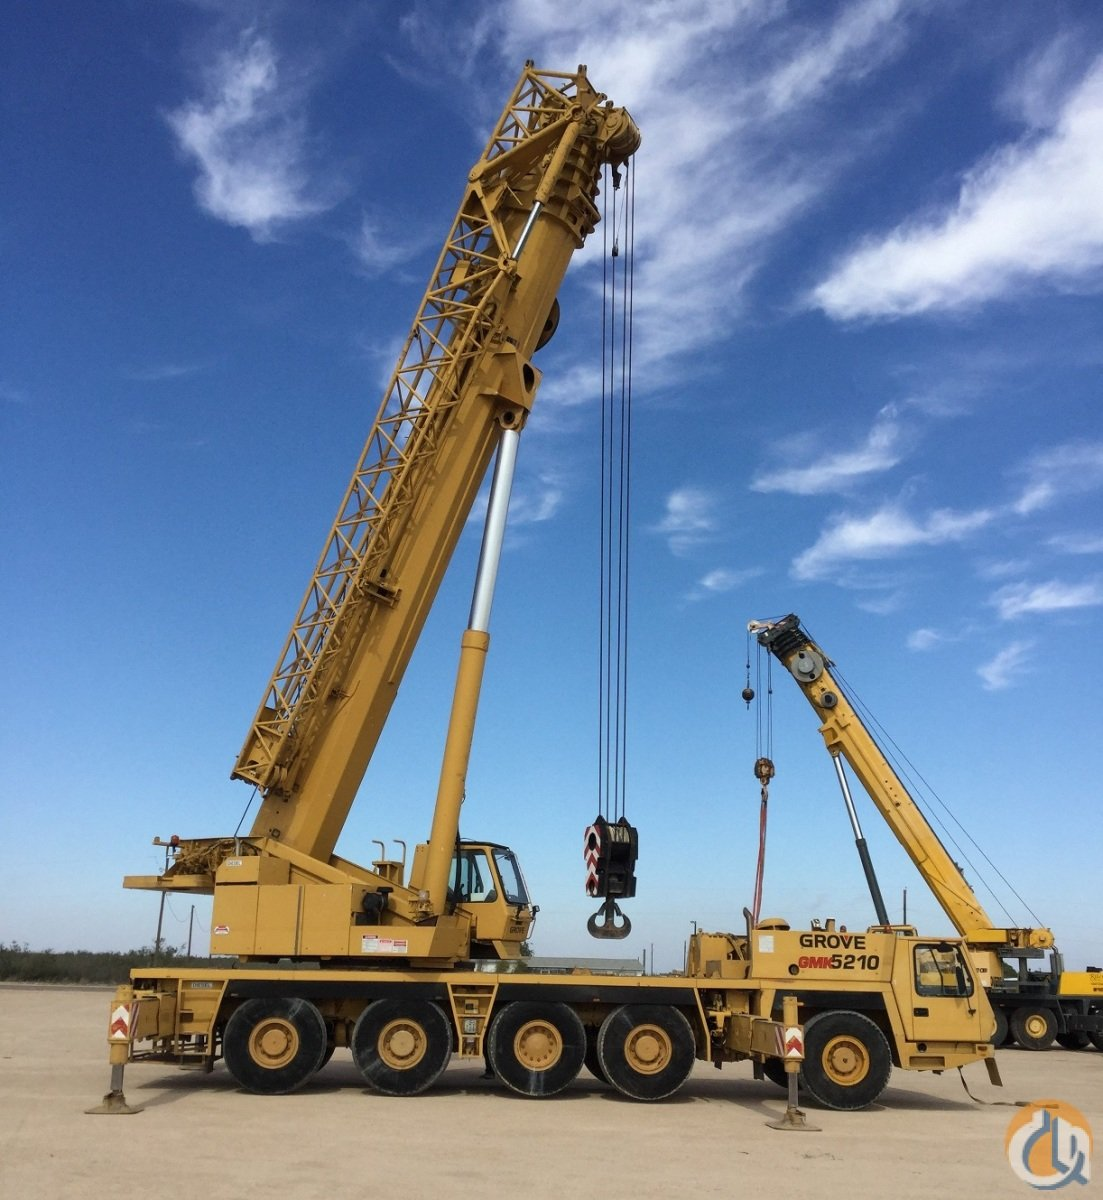 Sold 2000 GROVE GMK5210 Crane for  in Stanton Texas on CraneNetworkcom